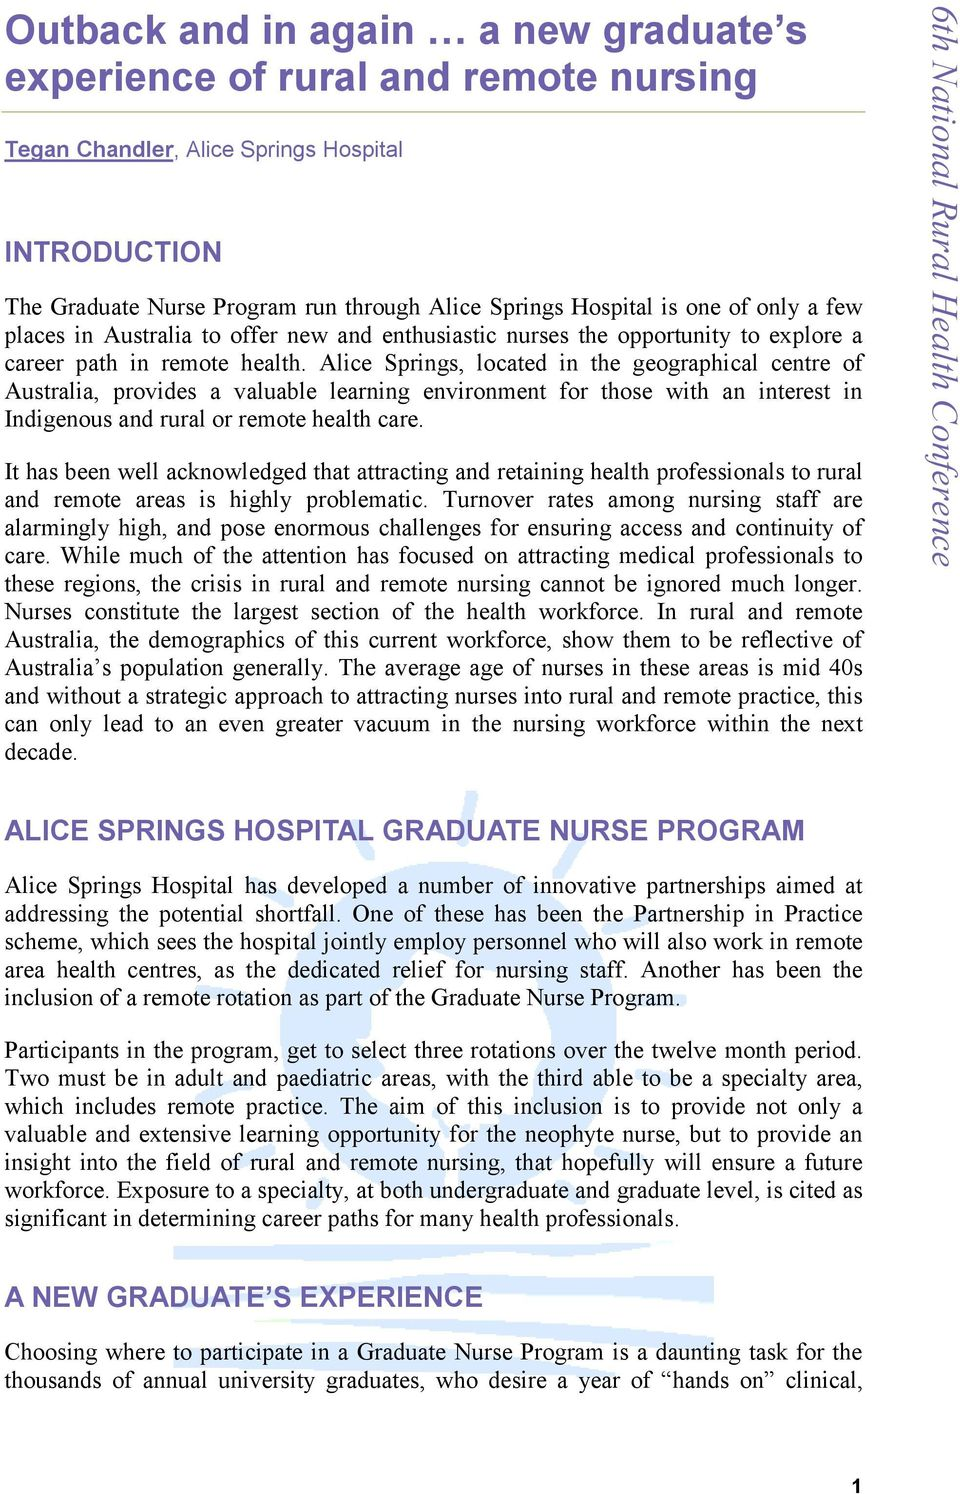 Alice Springs, located in the geographical centre of Australia, provides a valuable learning environment for those with an interest in Indigenous and rural or remote health care.